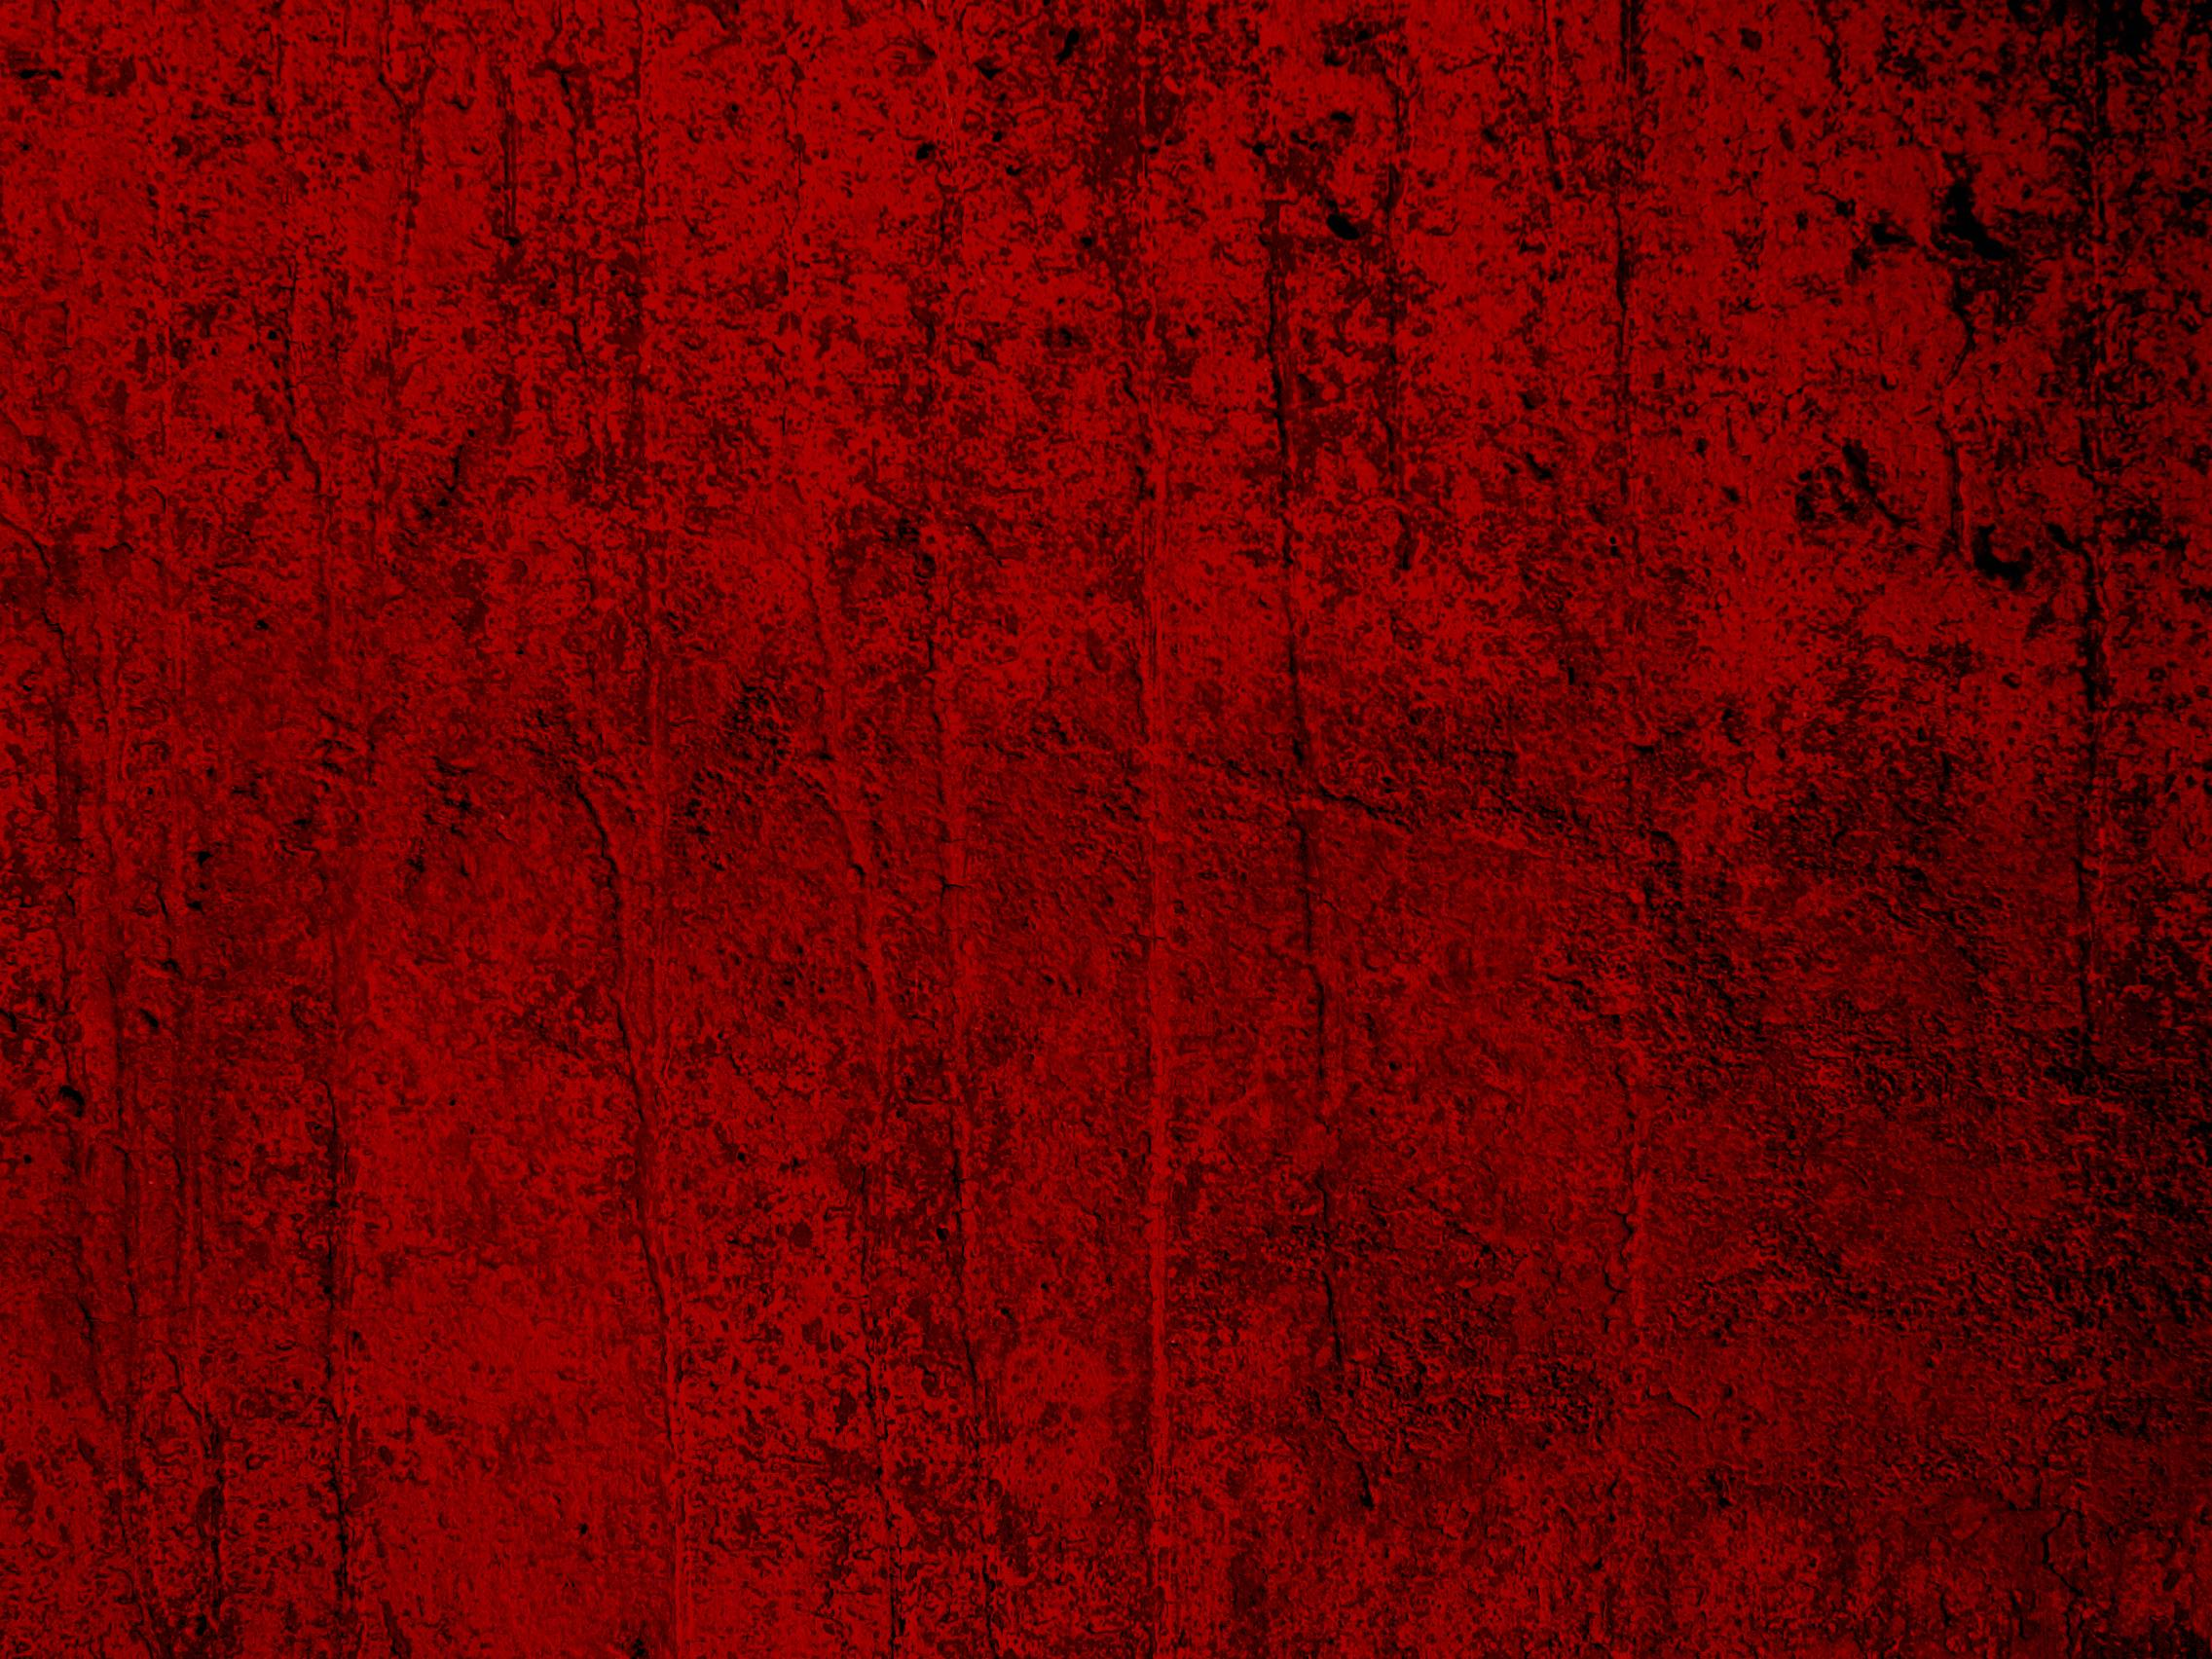 red textured background hd - photo #8